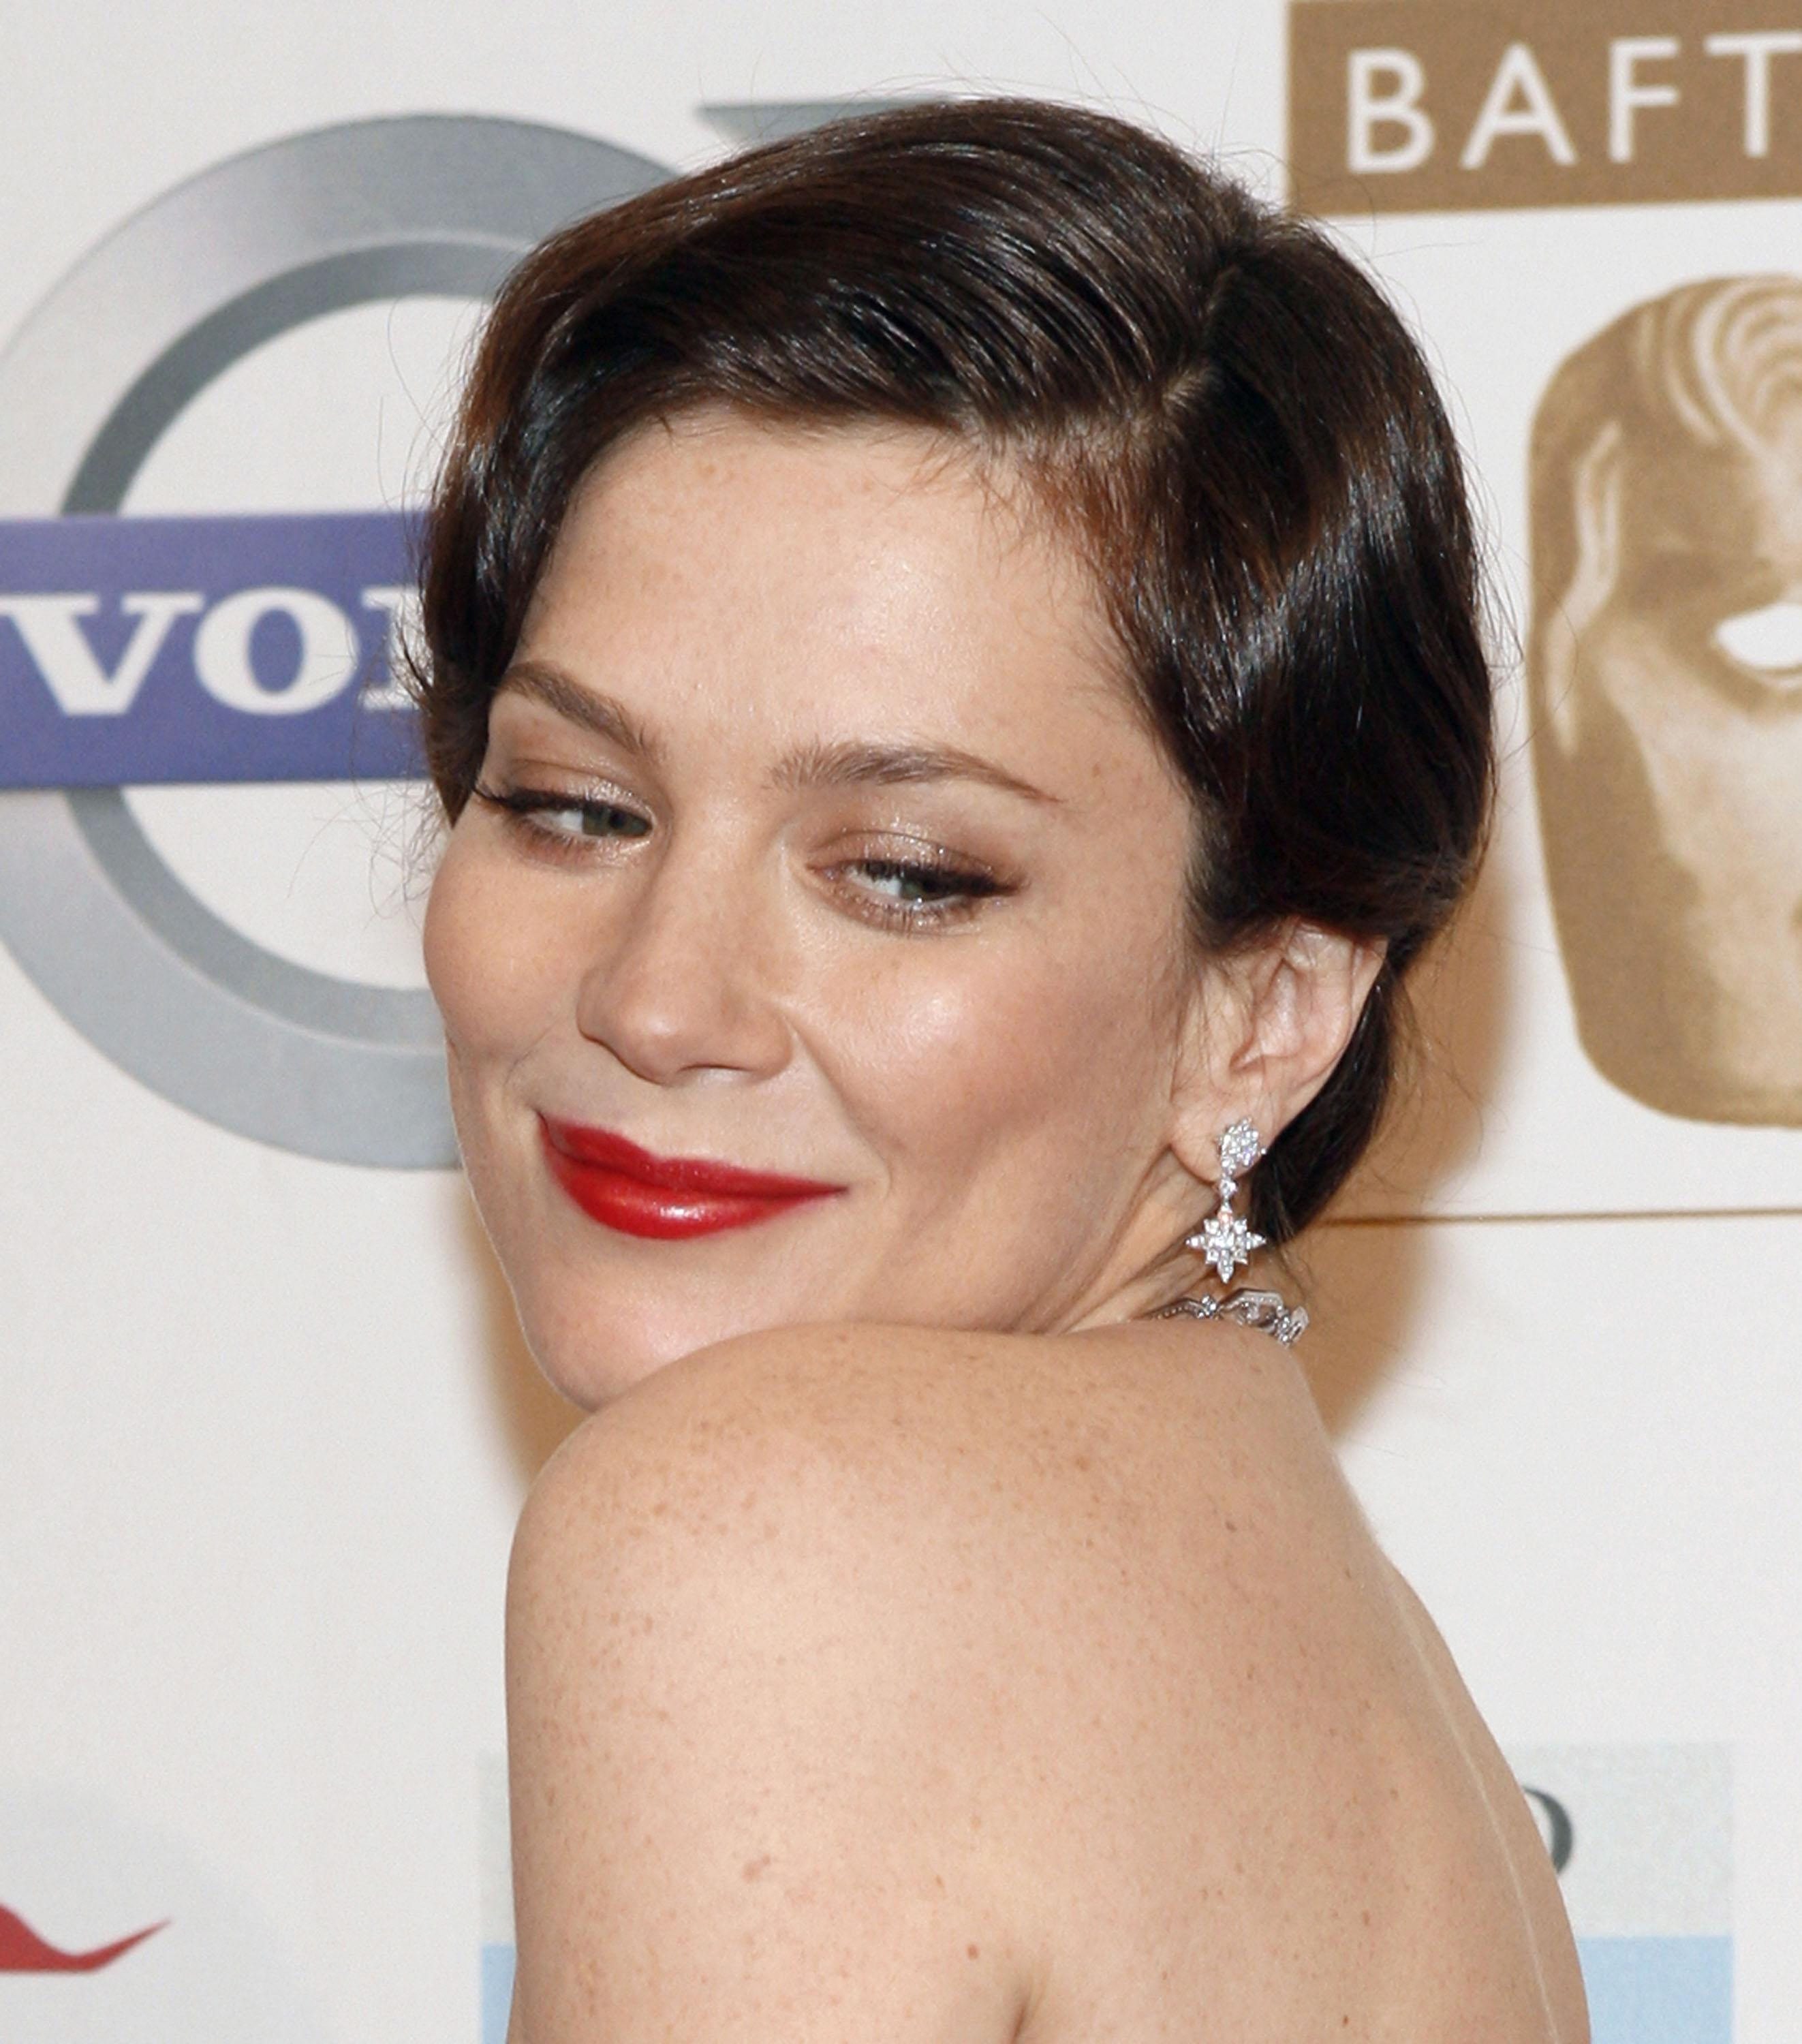 Anna Friel reveals Hollywood pressure on looks